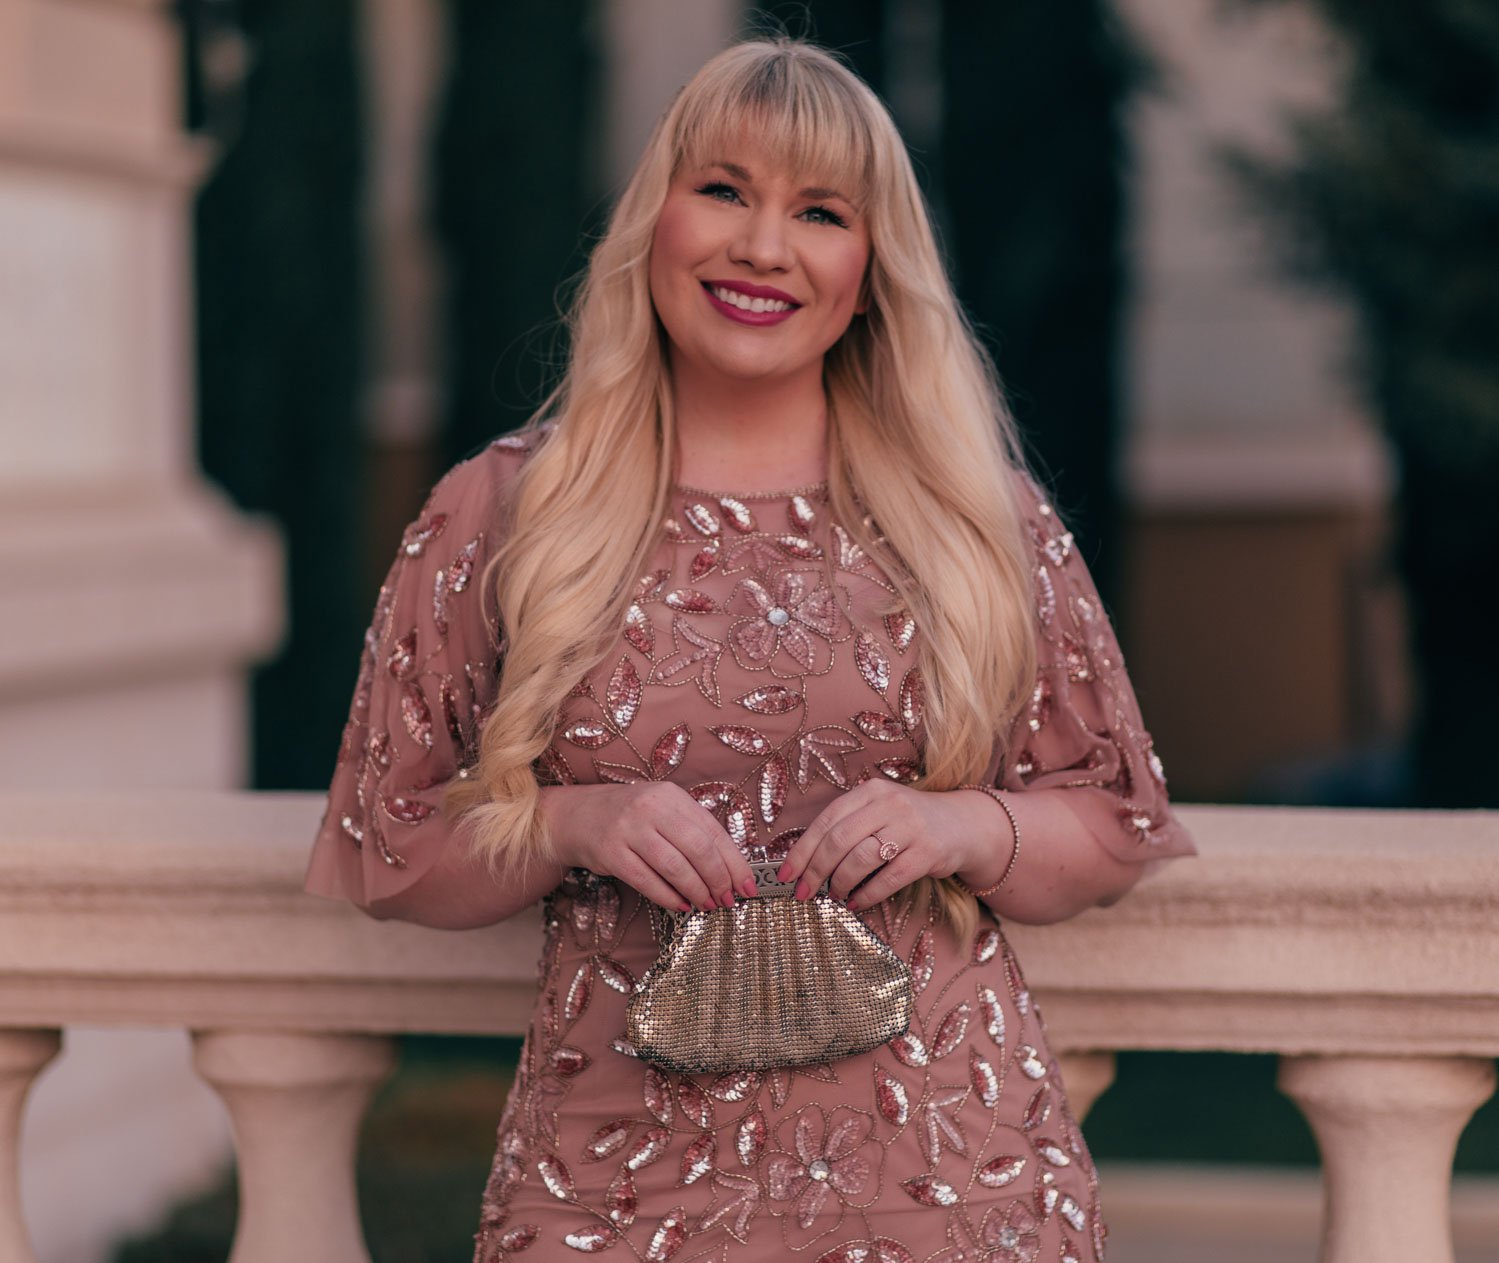 Feminine Fashion Blogger Elizabeth Hugen of Lizzie in Lace shares her 2021 New Years goals and styles a stunning pink tulle Adrianna Papell dress and vintage Whiting and Davis bag